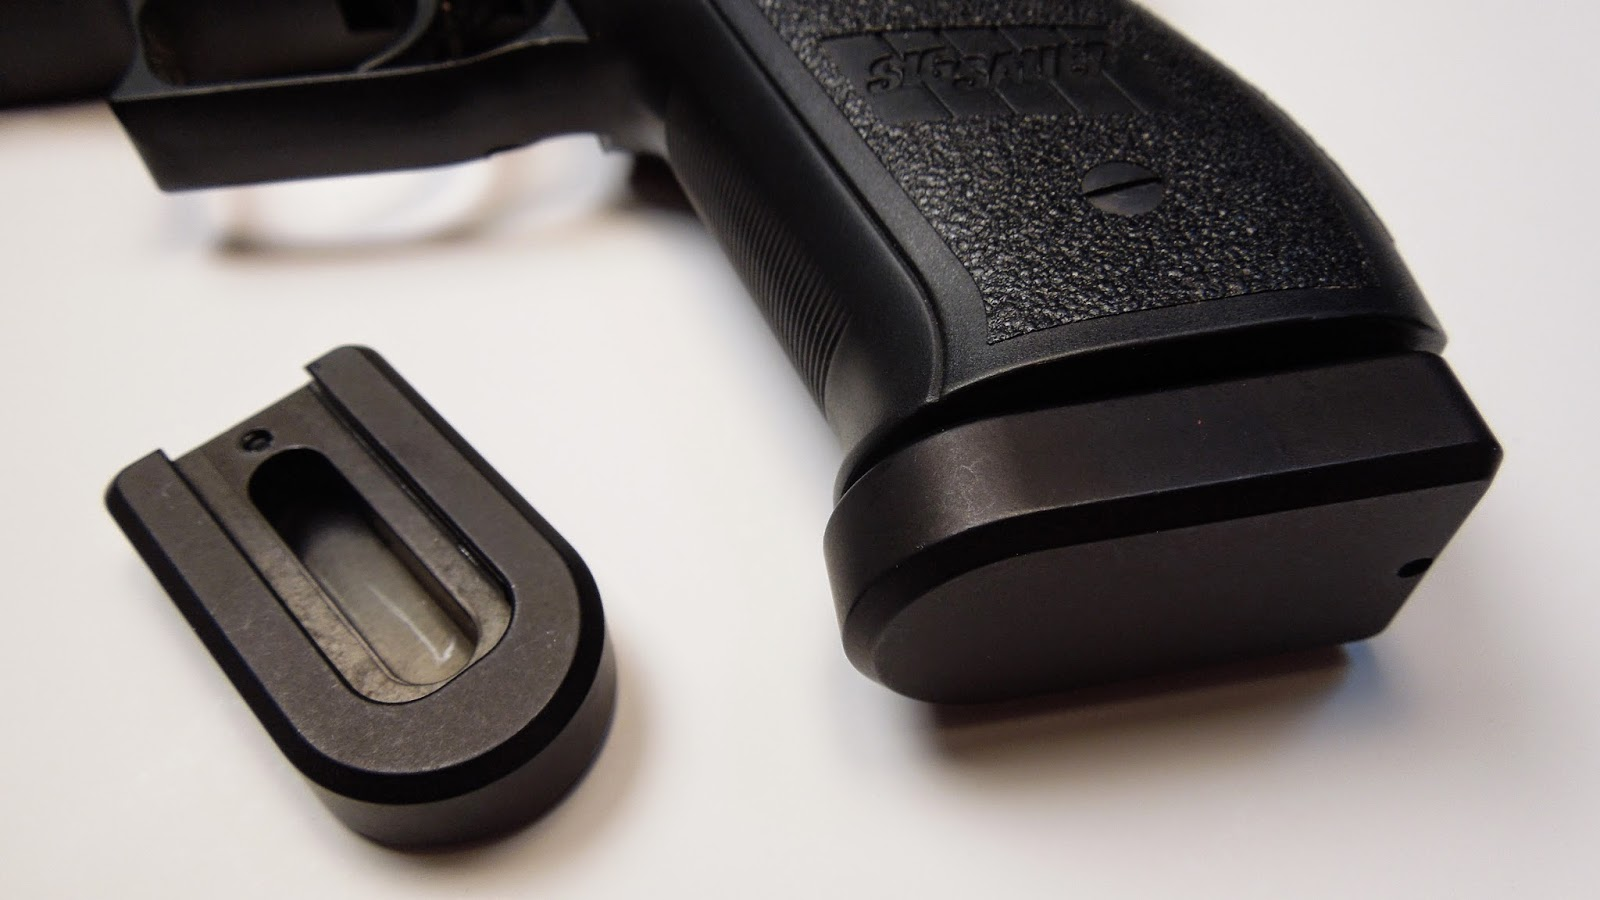 NicTaylor's R&R (Review & Recommendations): Sig Sauer